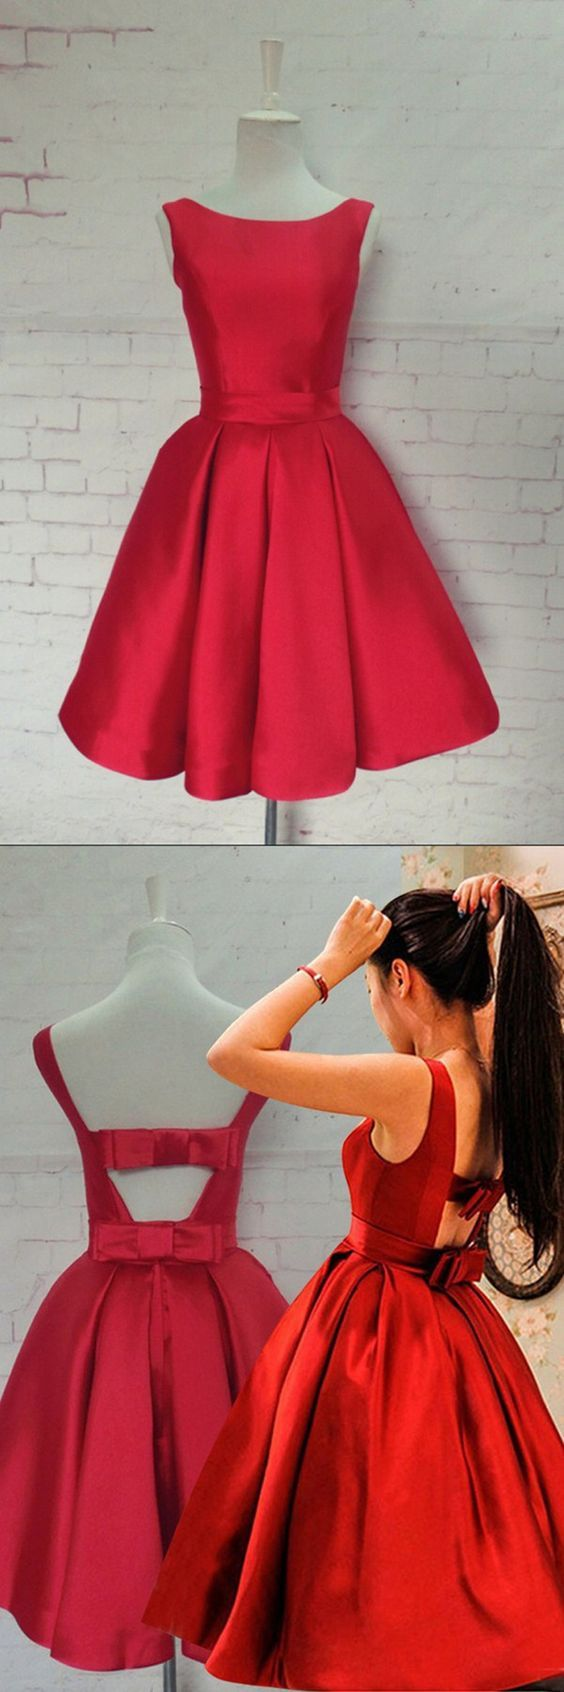 Short sexy red satin prom dresskneelength homecoming dresses with